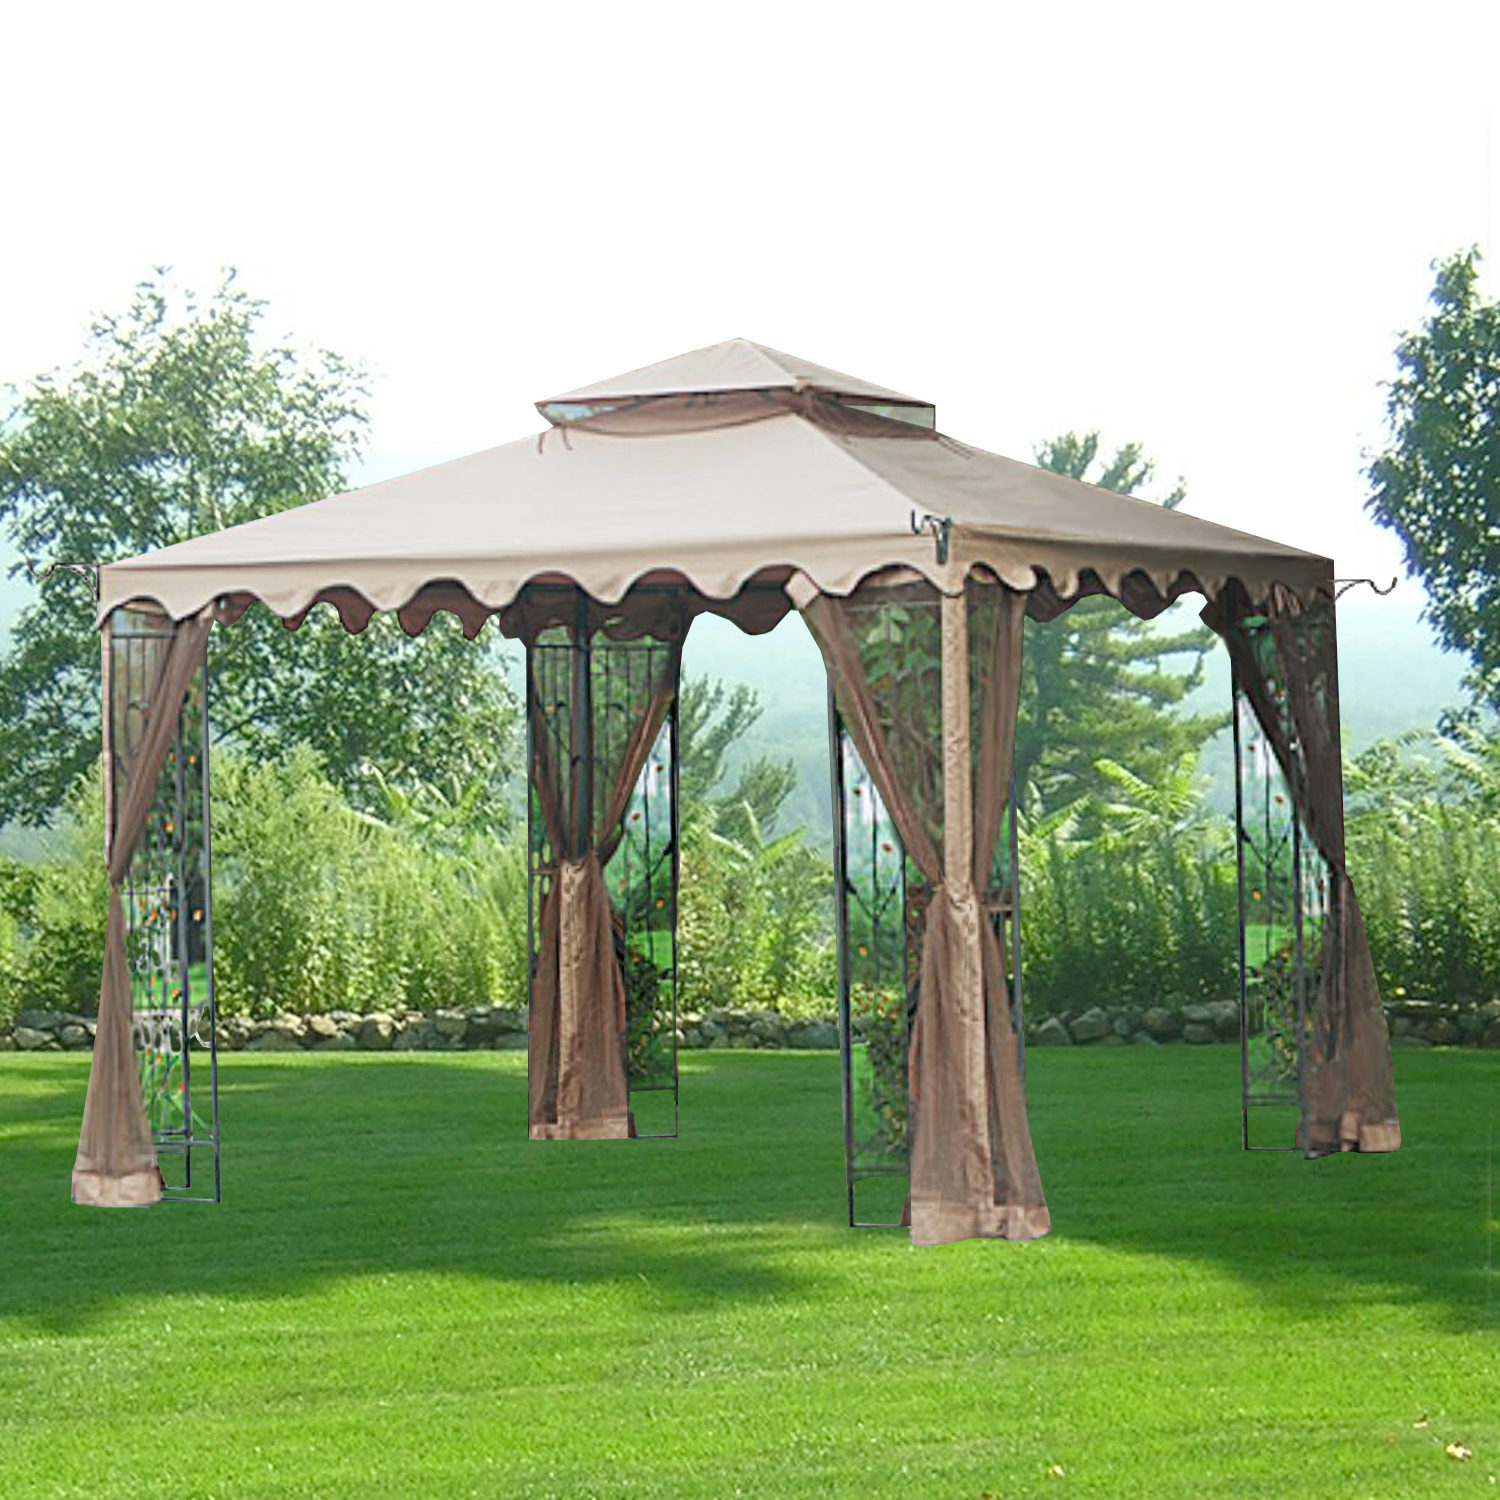 Garden Winds Replacement Canopy Top for 10x10 Leaf Gazebo - Riplock 350